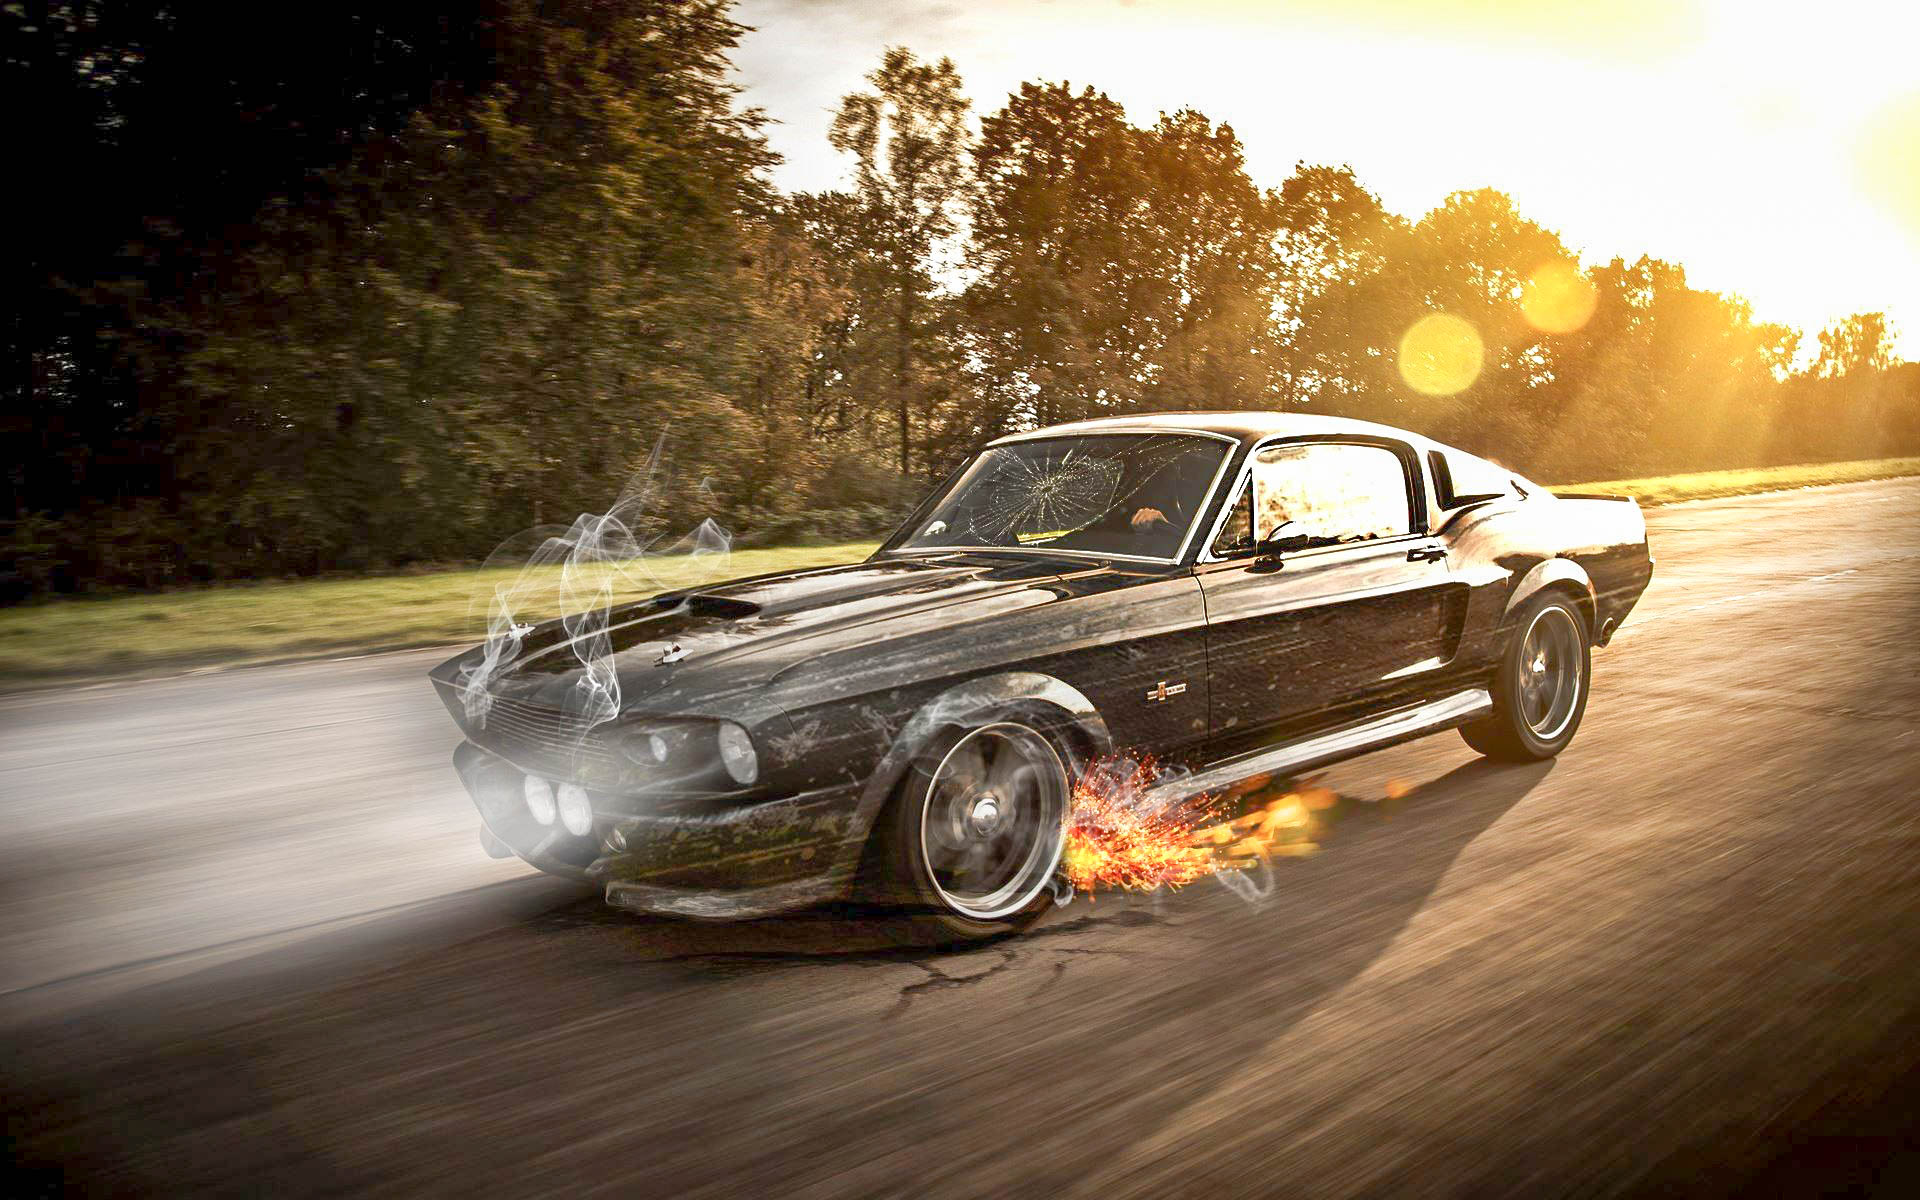 Muscle Car Iphone Wallpaper Ford Mustang New Model Epic Hd Wallpapers 2017